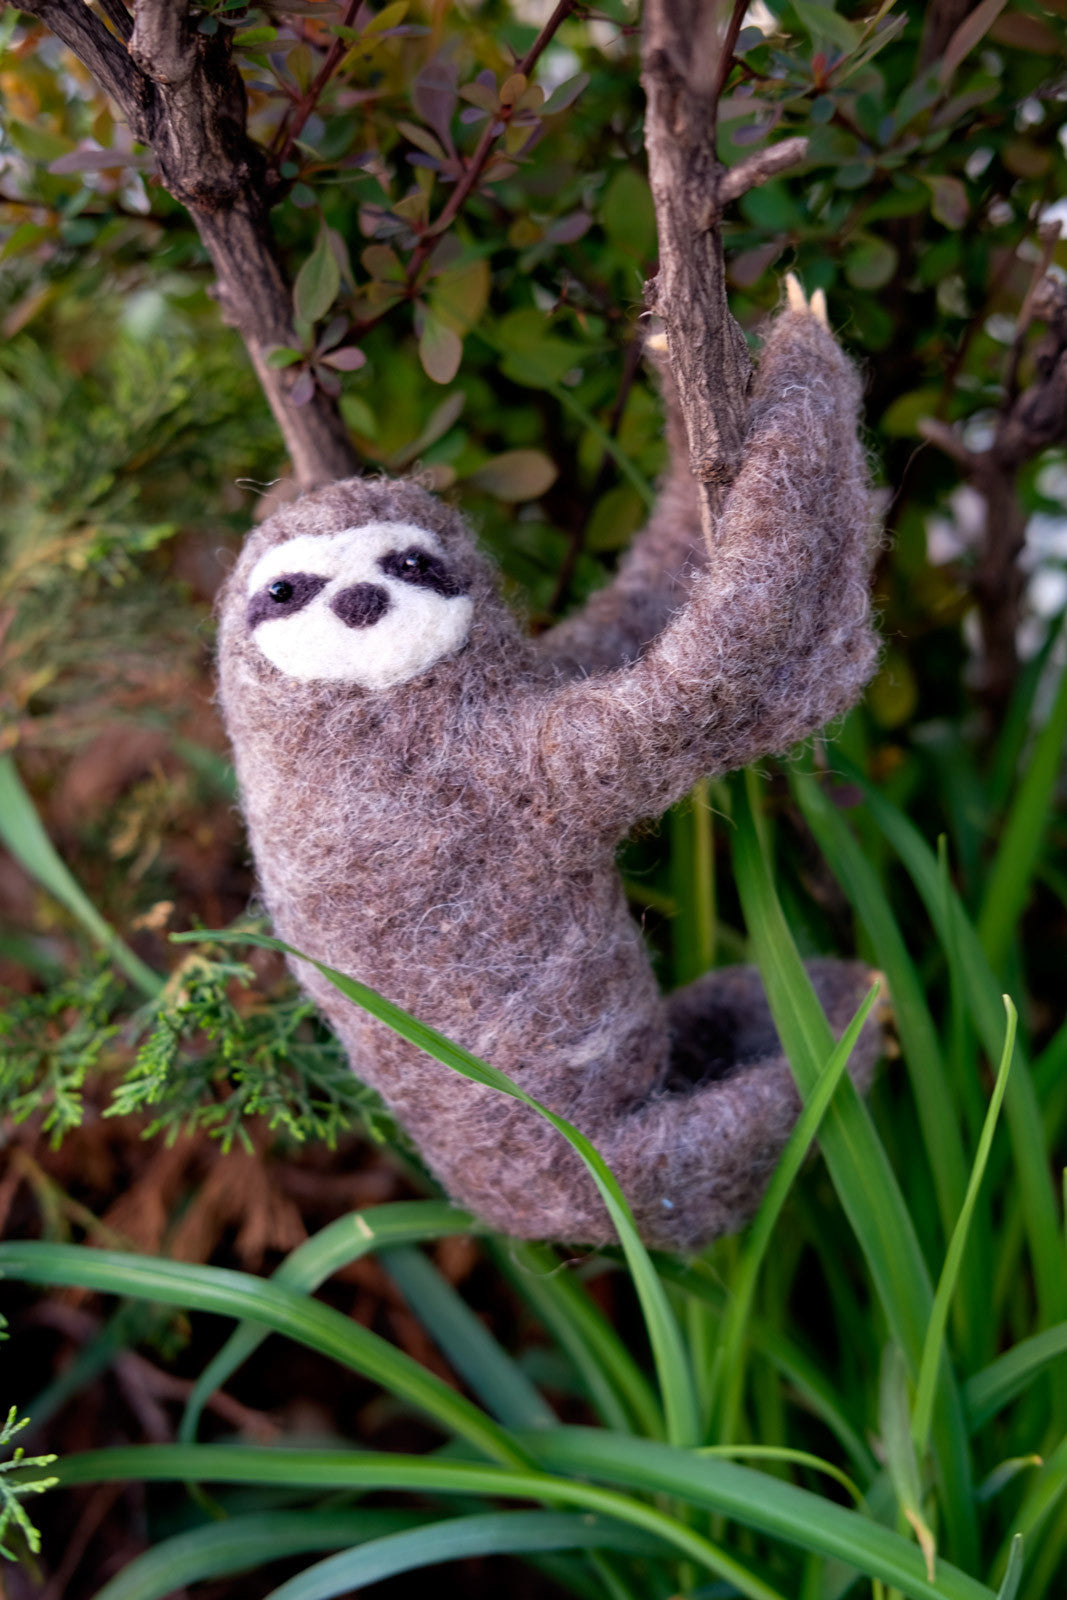 Needle Felted Sloth hanging in a bush